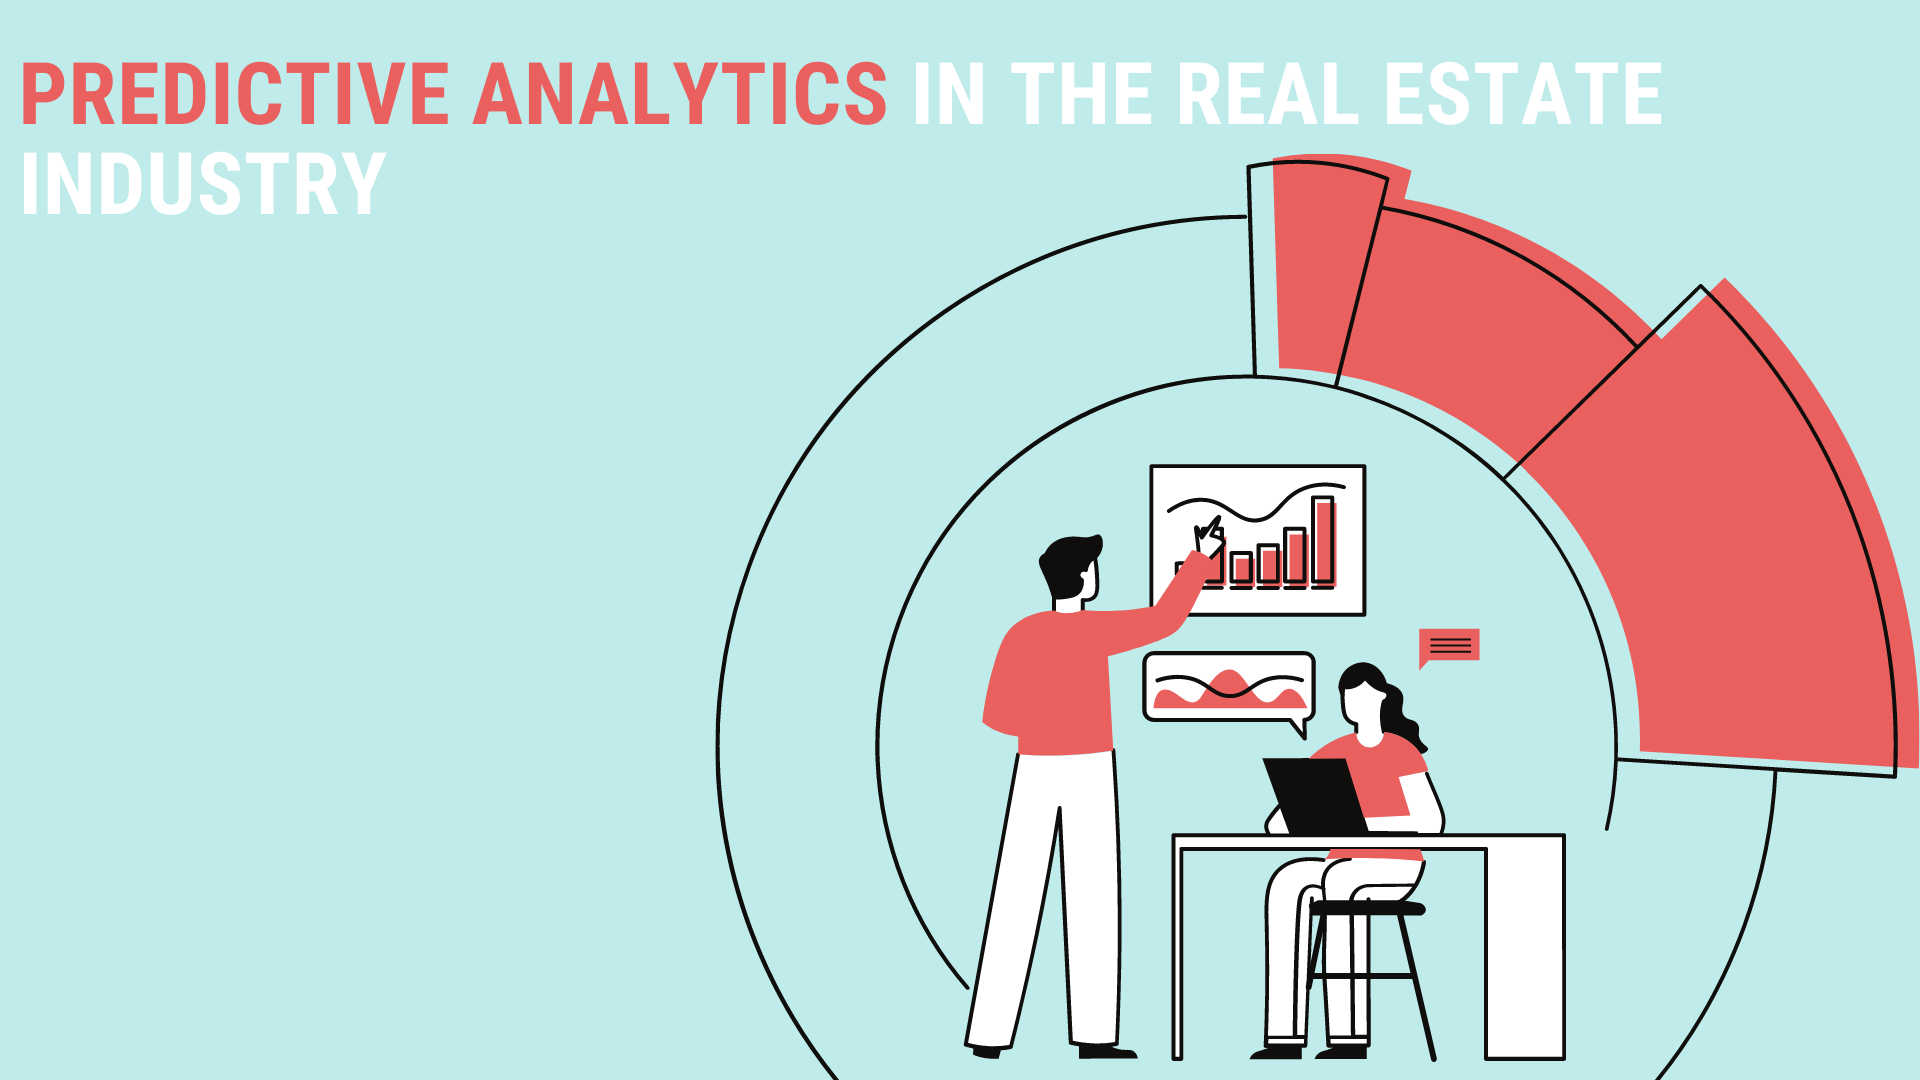 predictive analytics in the real estate industry